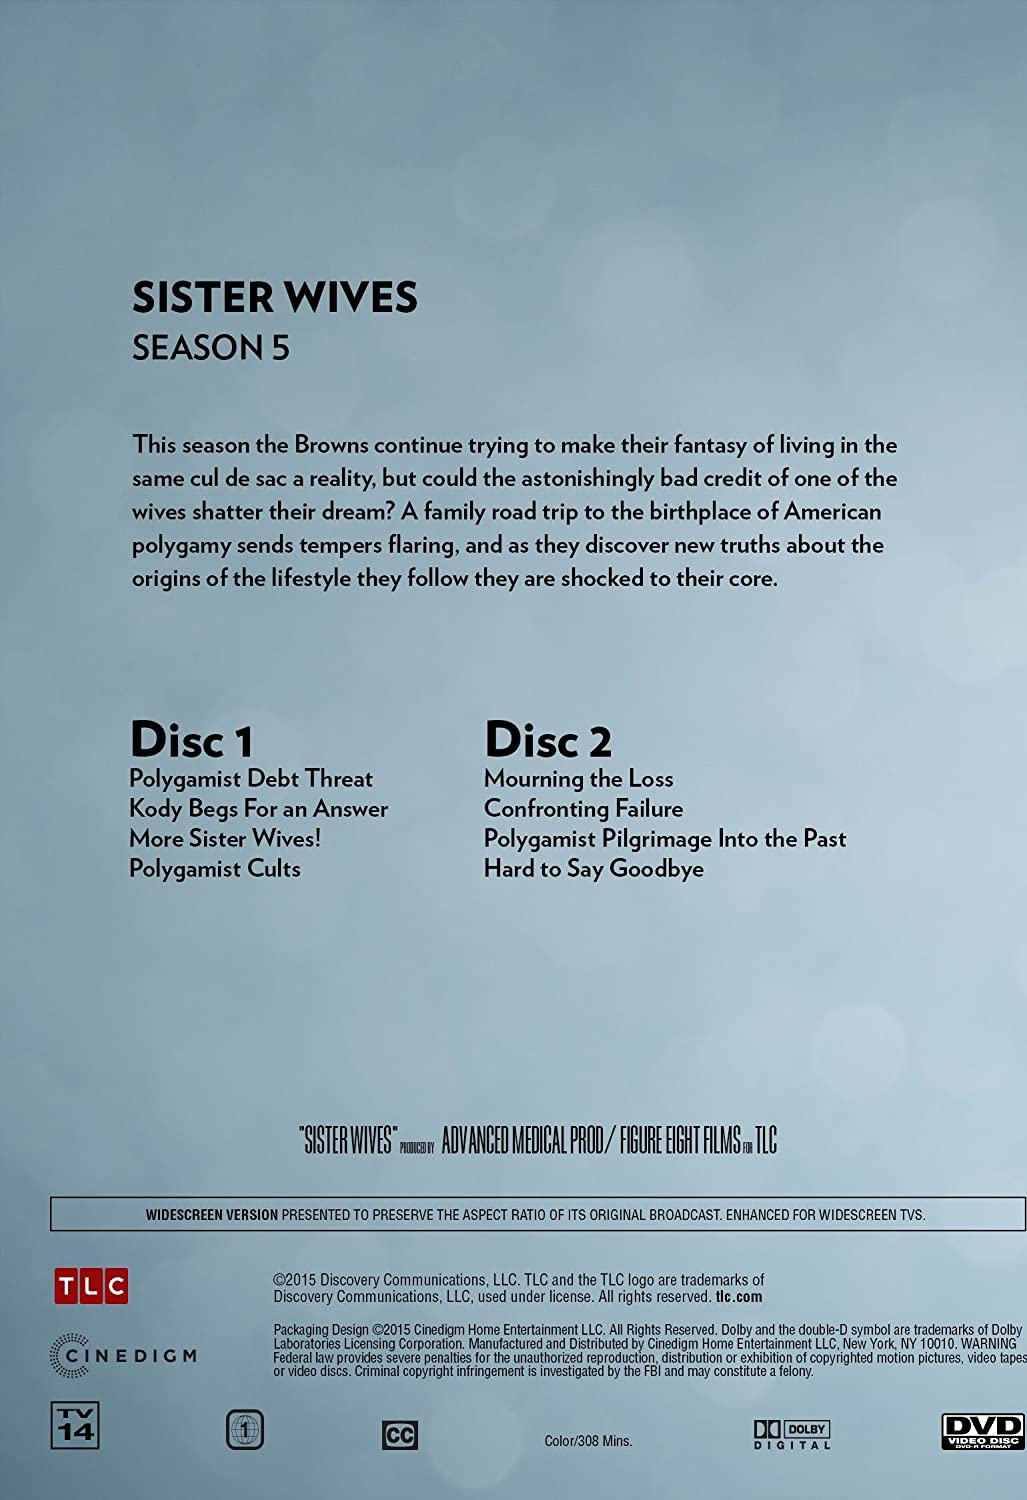 Amazon.com: Sister Wives - Season 5: SISTER WIVES: SEASON 5: Movies & TV